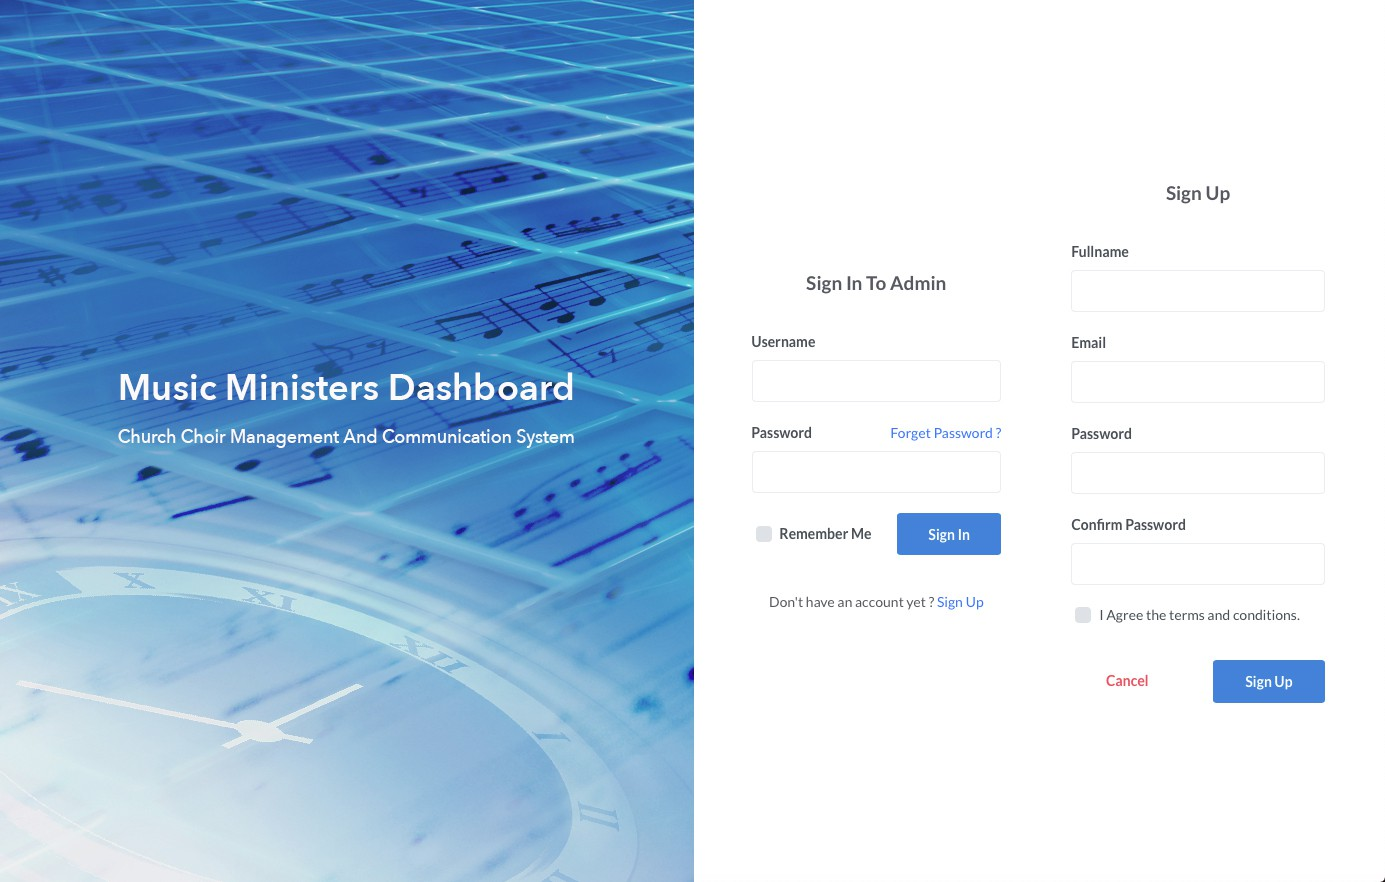 Music Ministers Dashboard